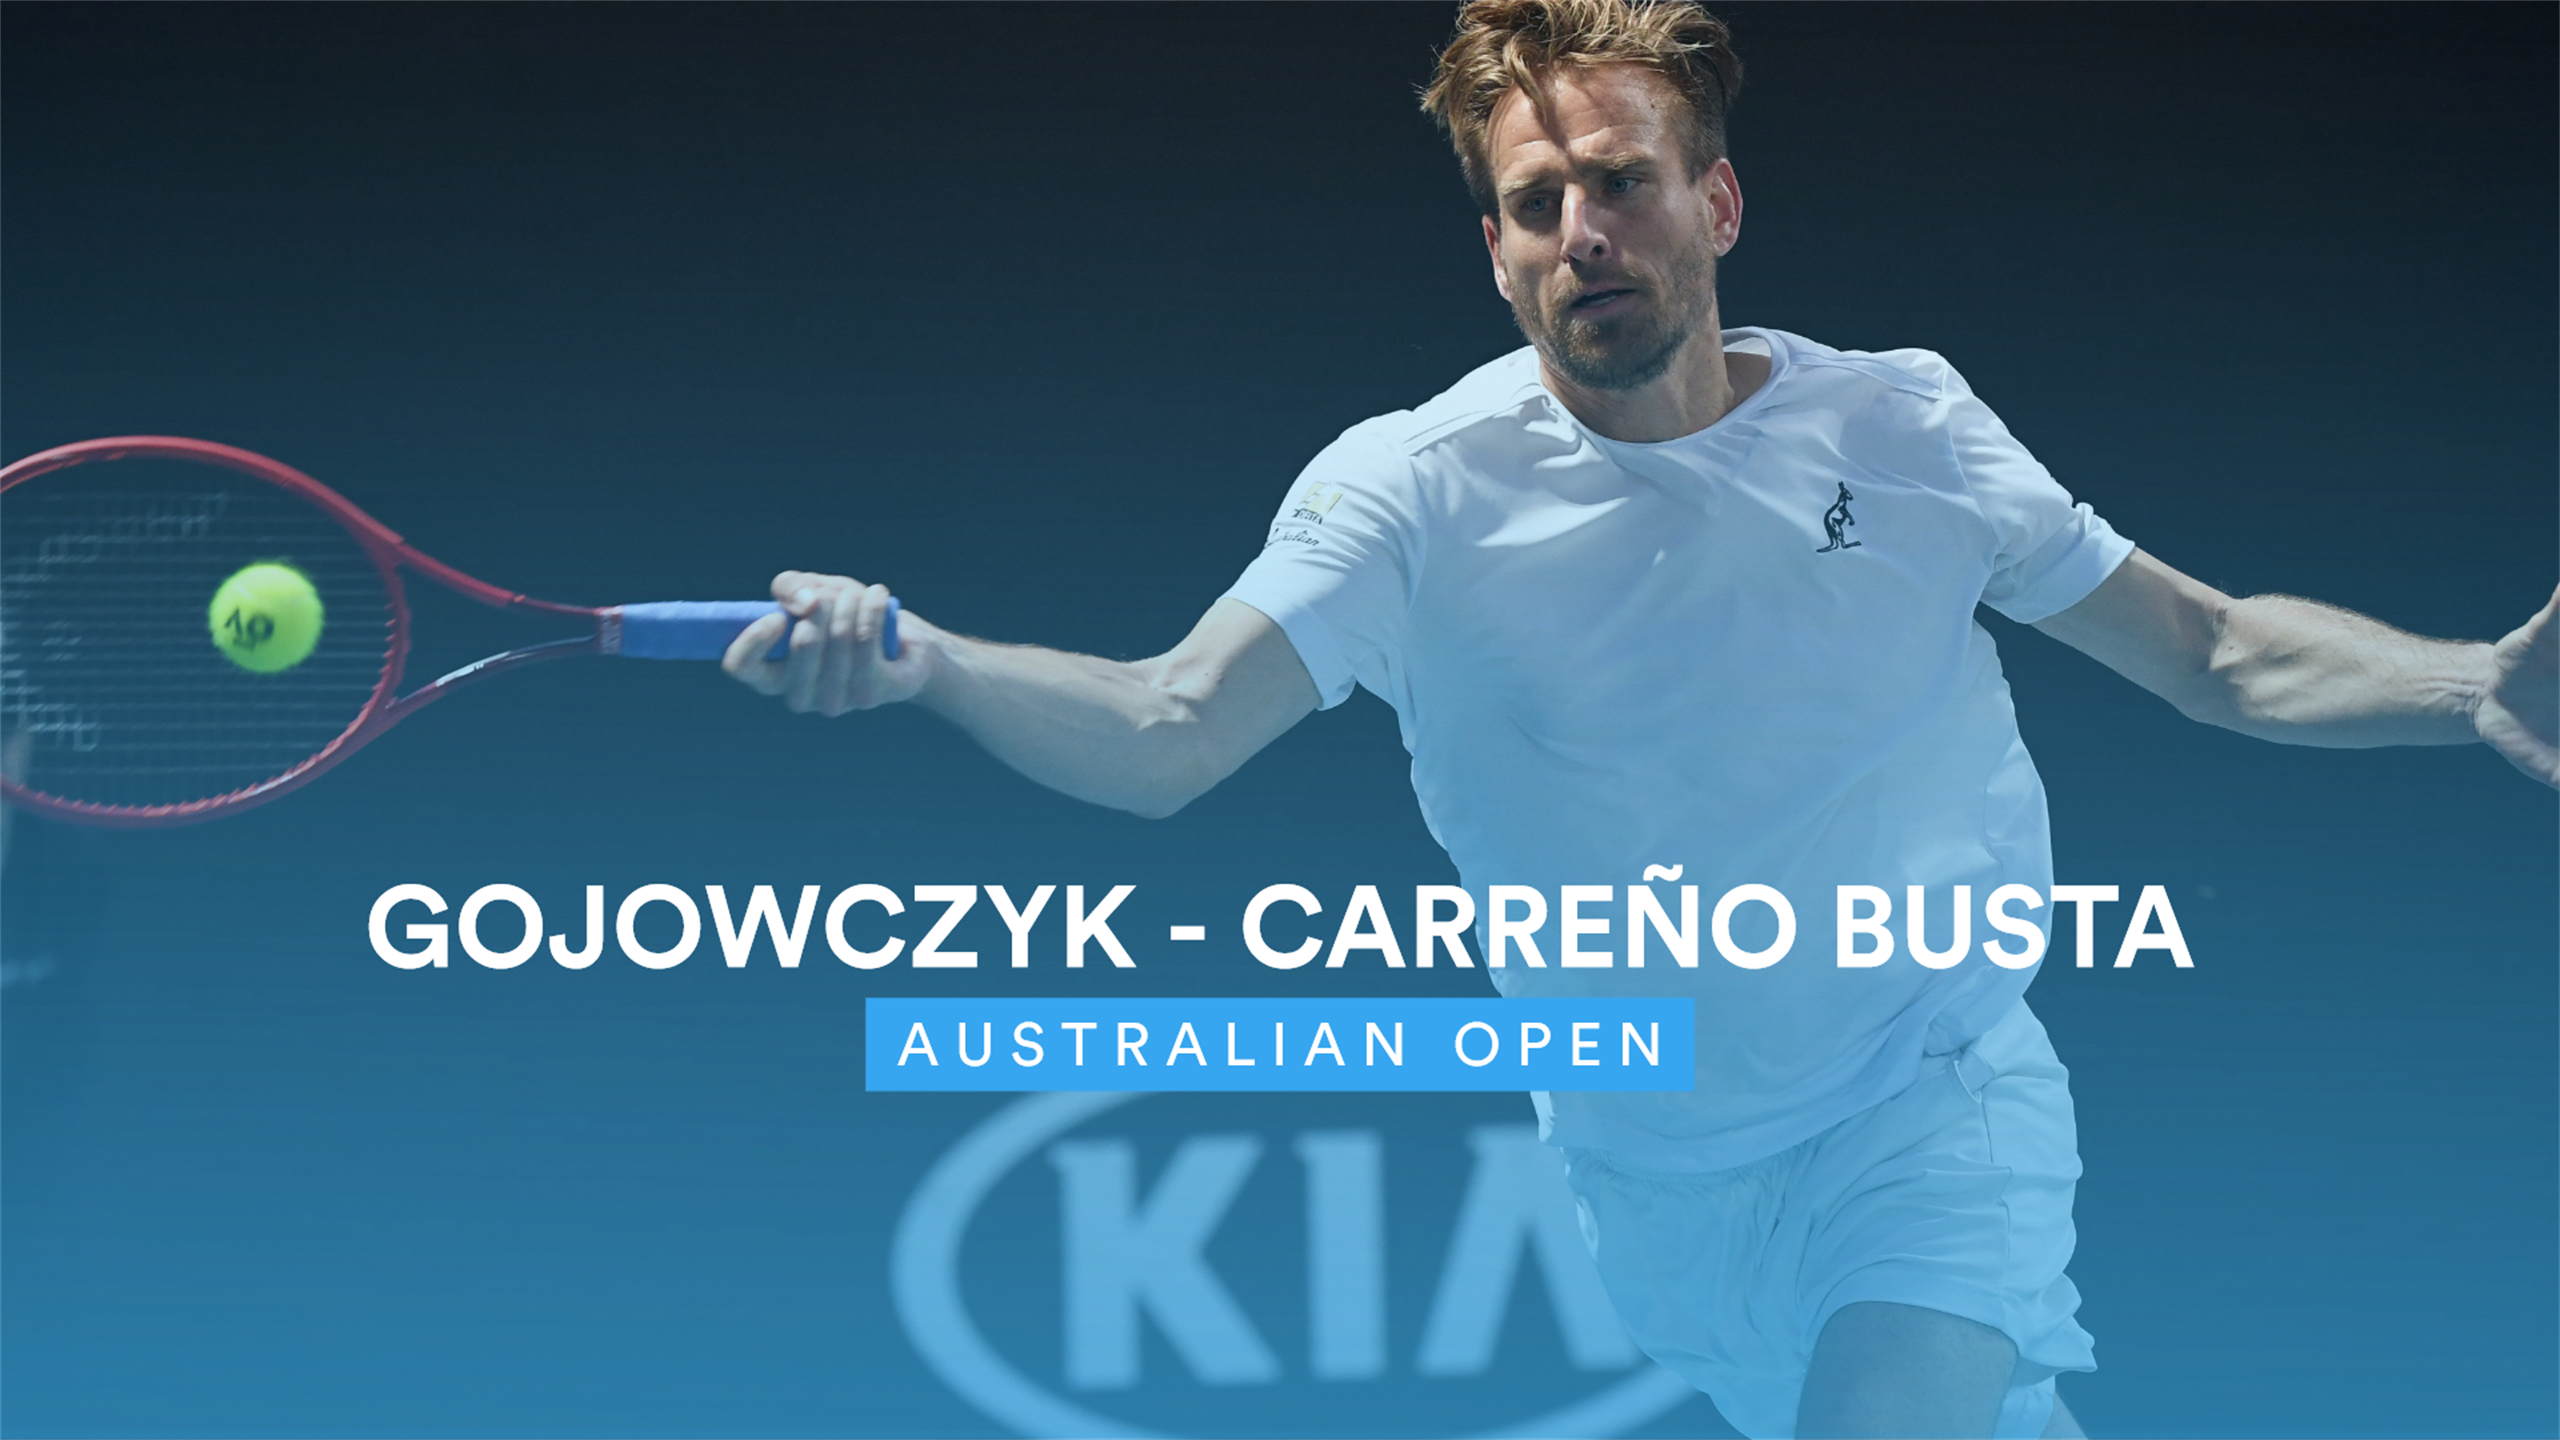 Australian Open 2020 Highlights Peter Gojowczyk Pablo Carreno Busta Tennis Video Eurosport